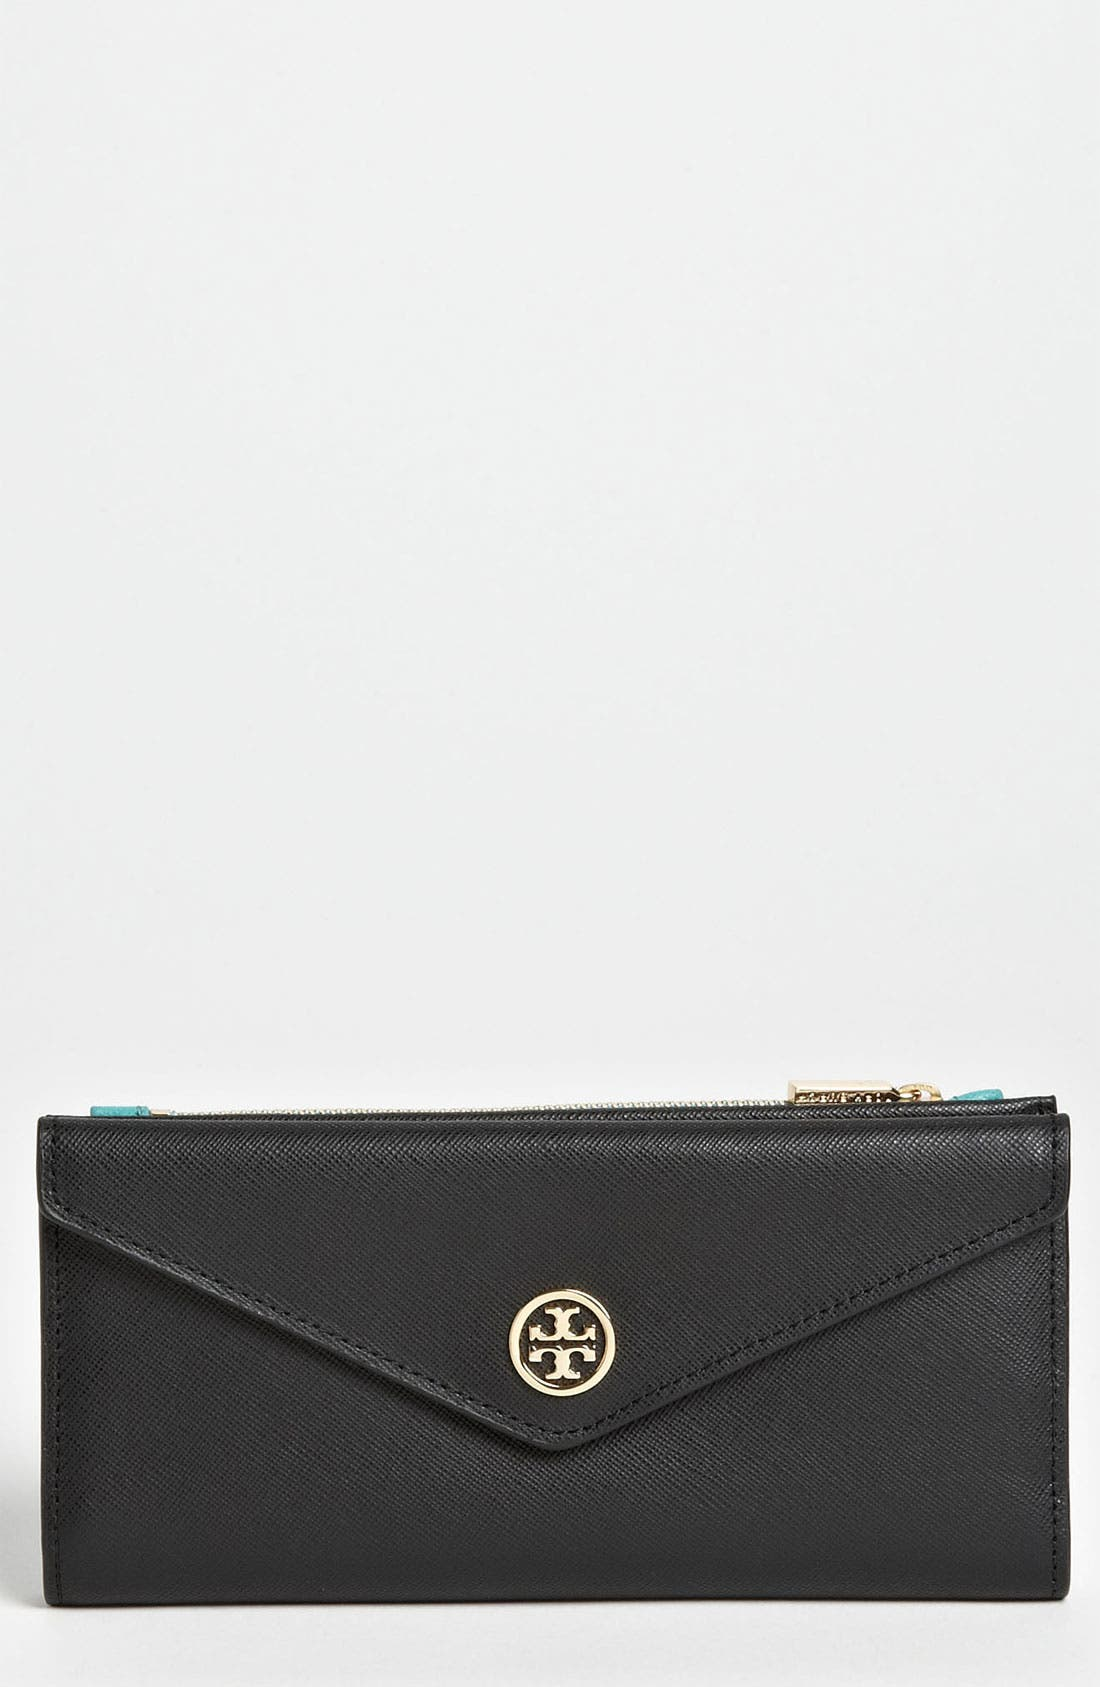 Main Image - Tory Burch 'Robinson' Envelope Wallet